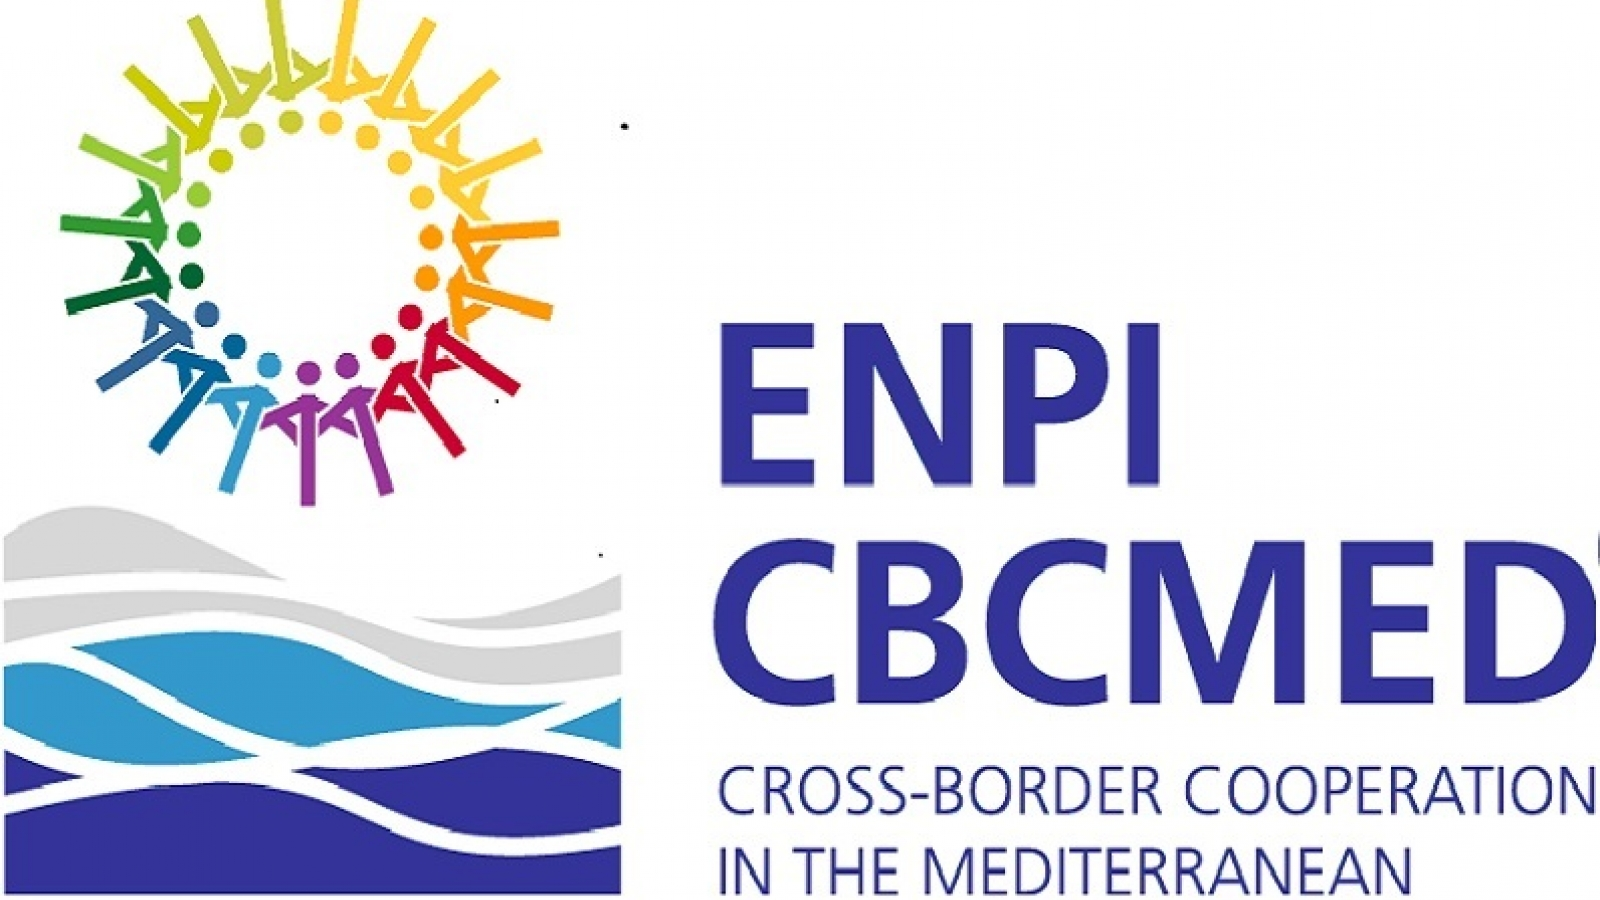 ENI CBC MED 2019 - strategic projects: Proposal from European Institute for Local Development (EILD) - INTROMED